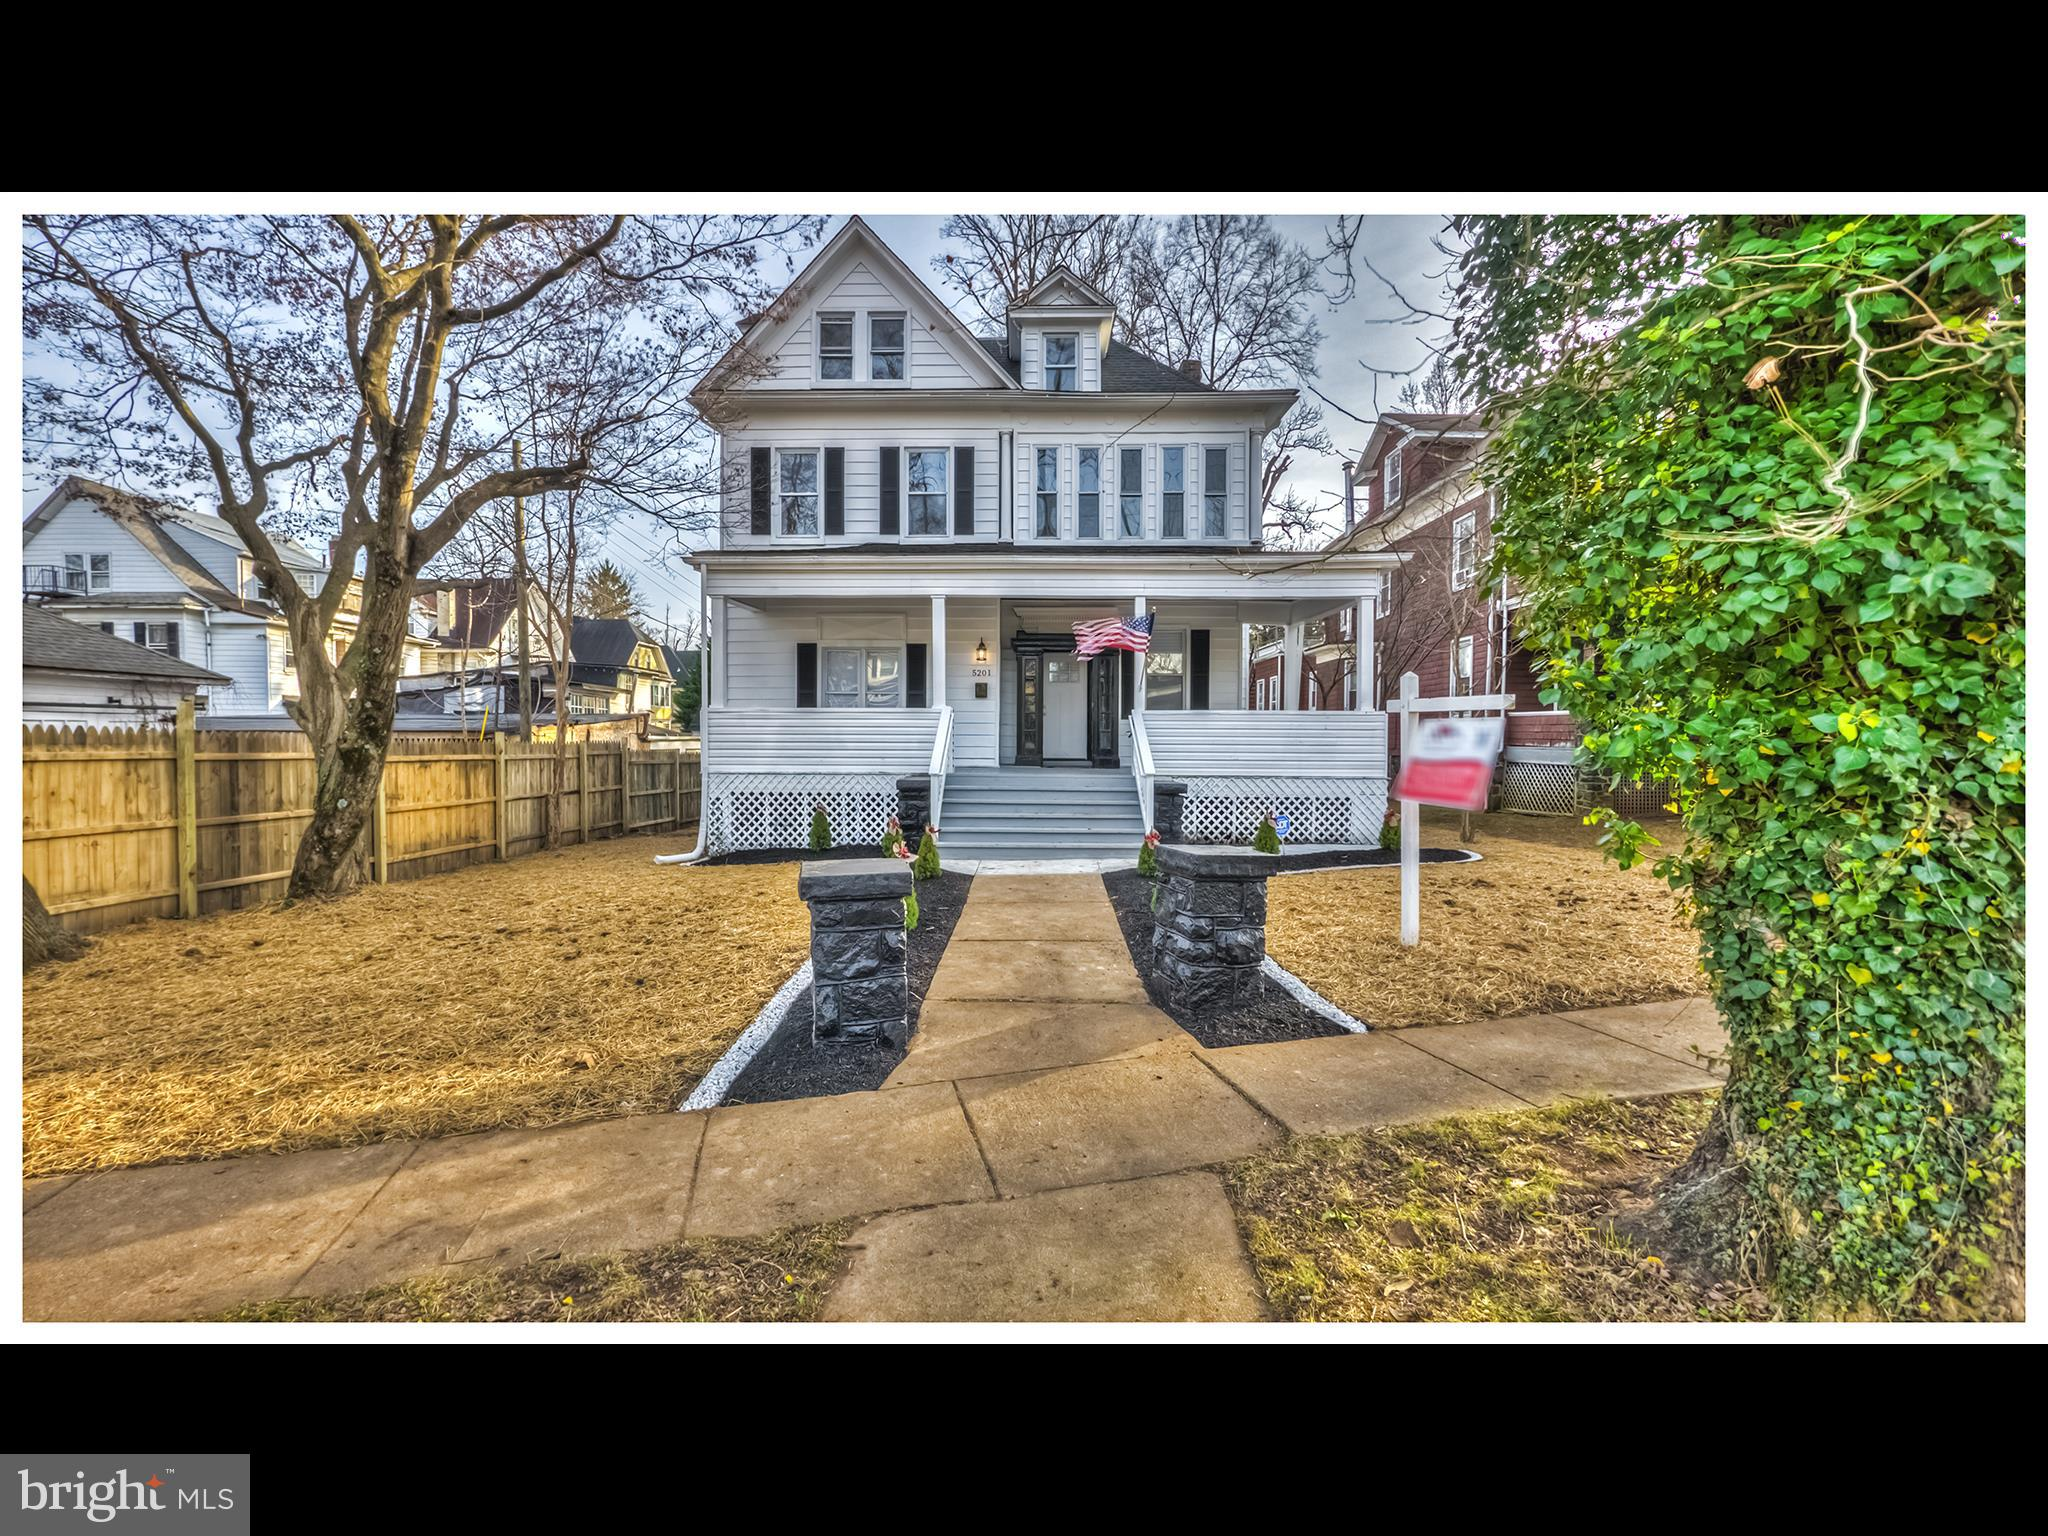 5201 GWYNN OAK AVENUE, BALTIMORE, MD 21207